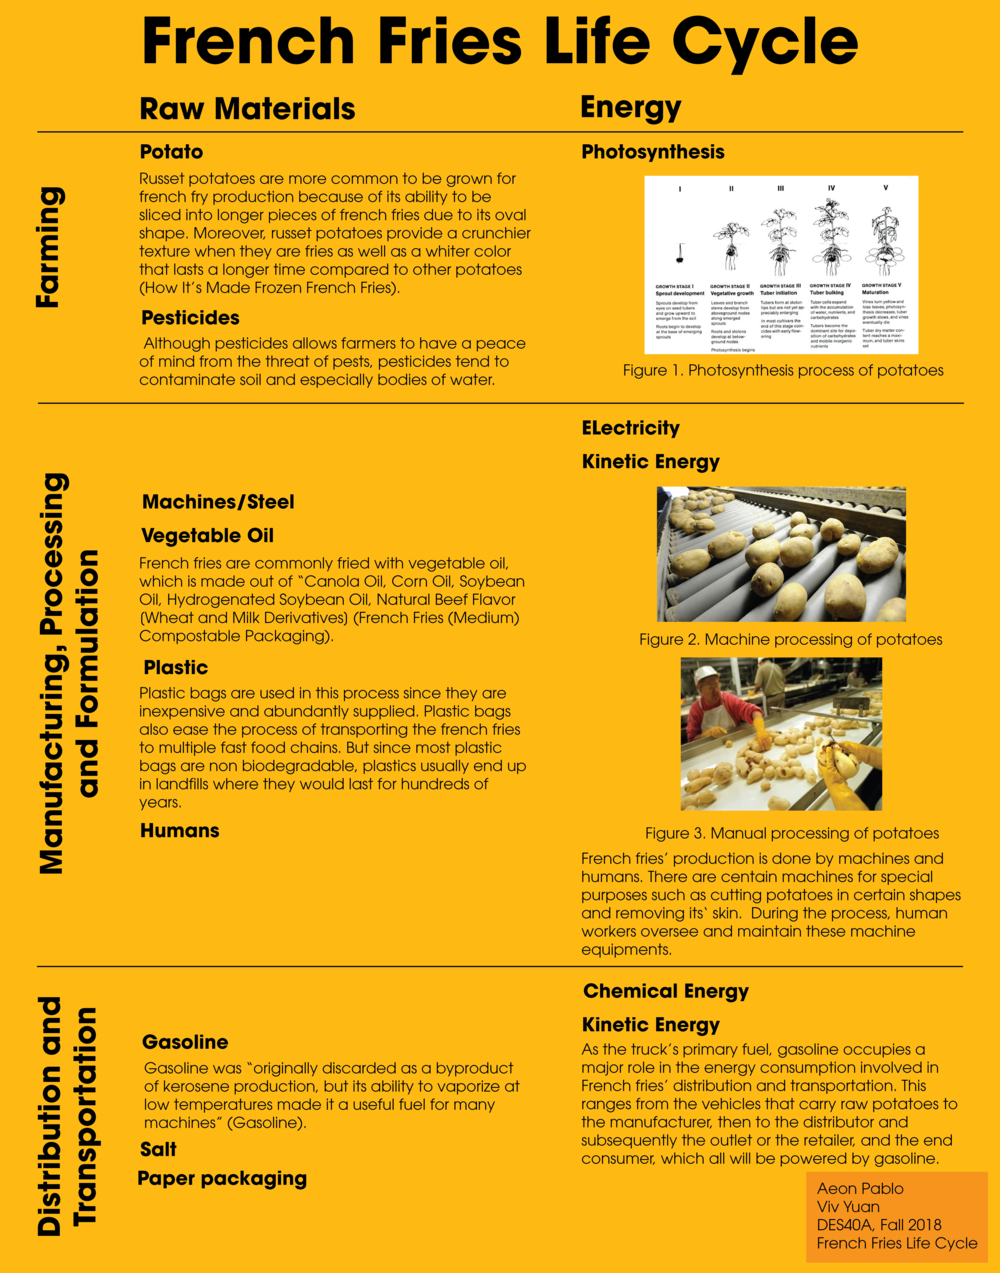 French Fries Life Cycle Posterpng.png